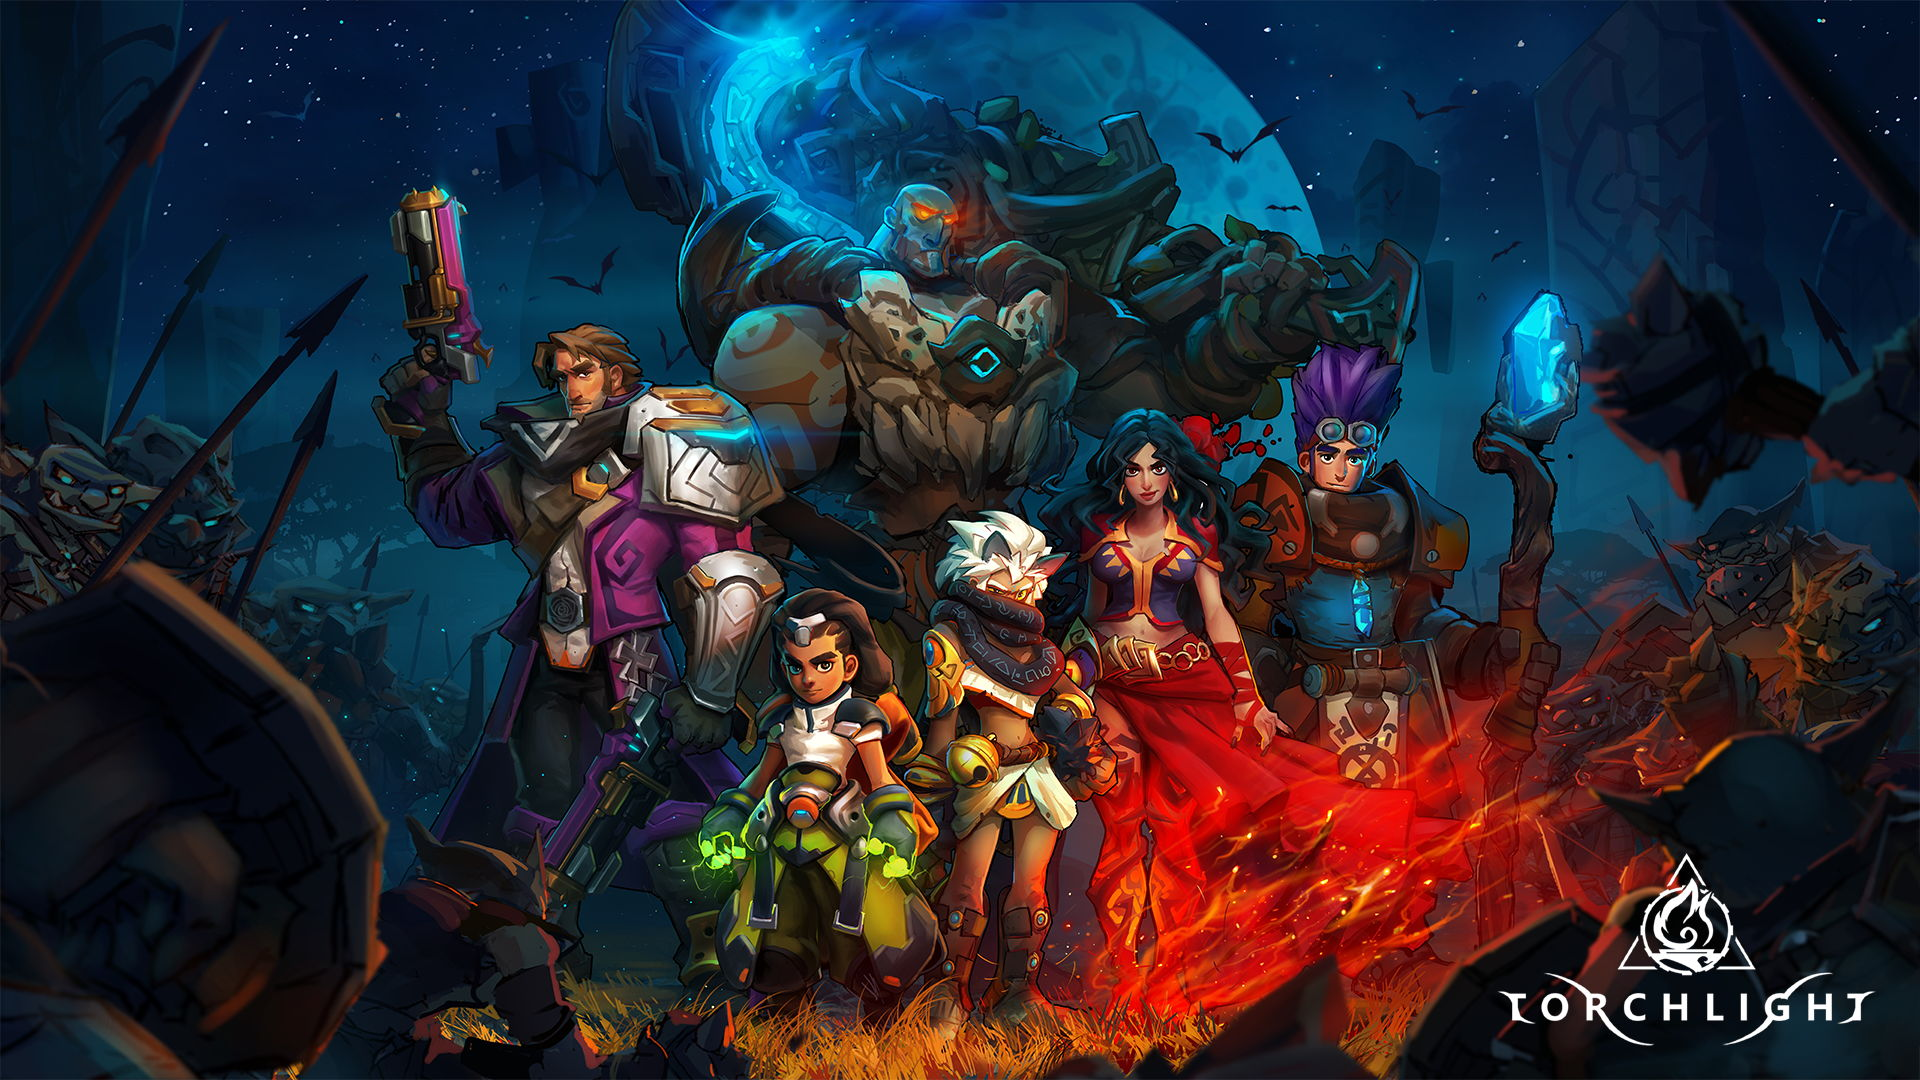 Torchlight: Infinite